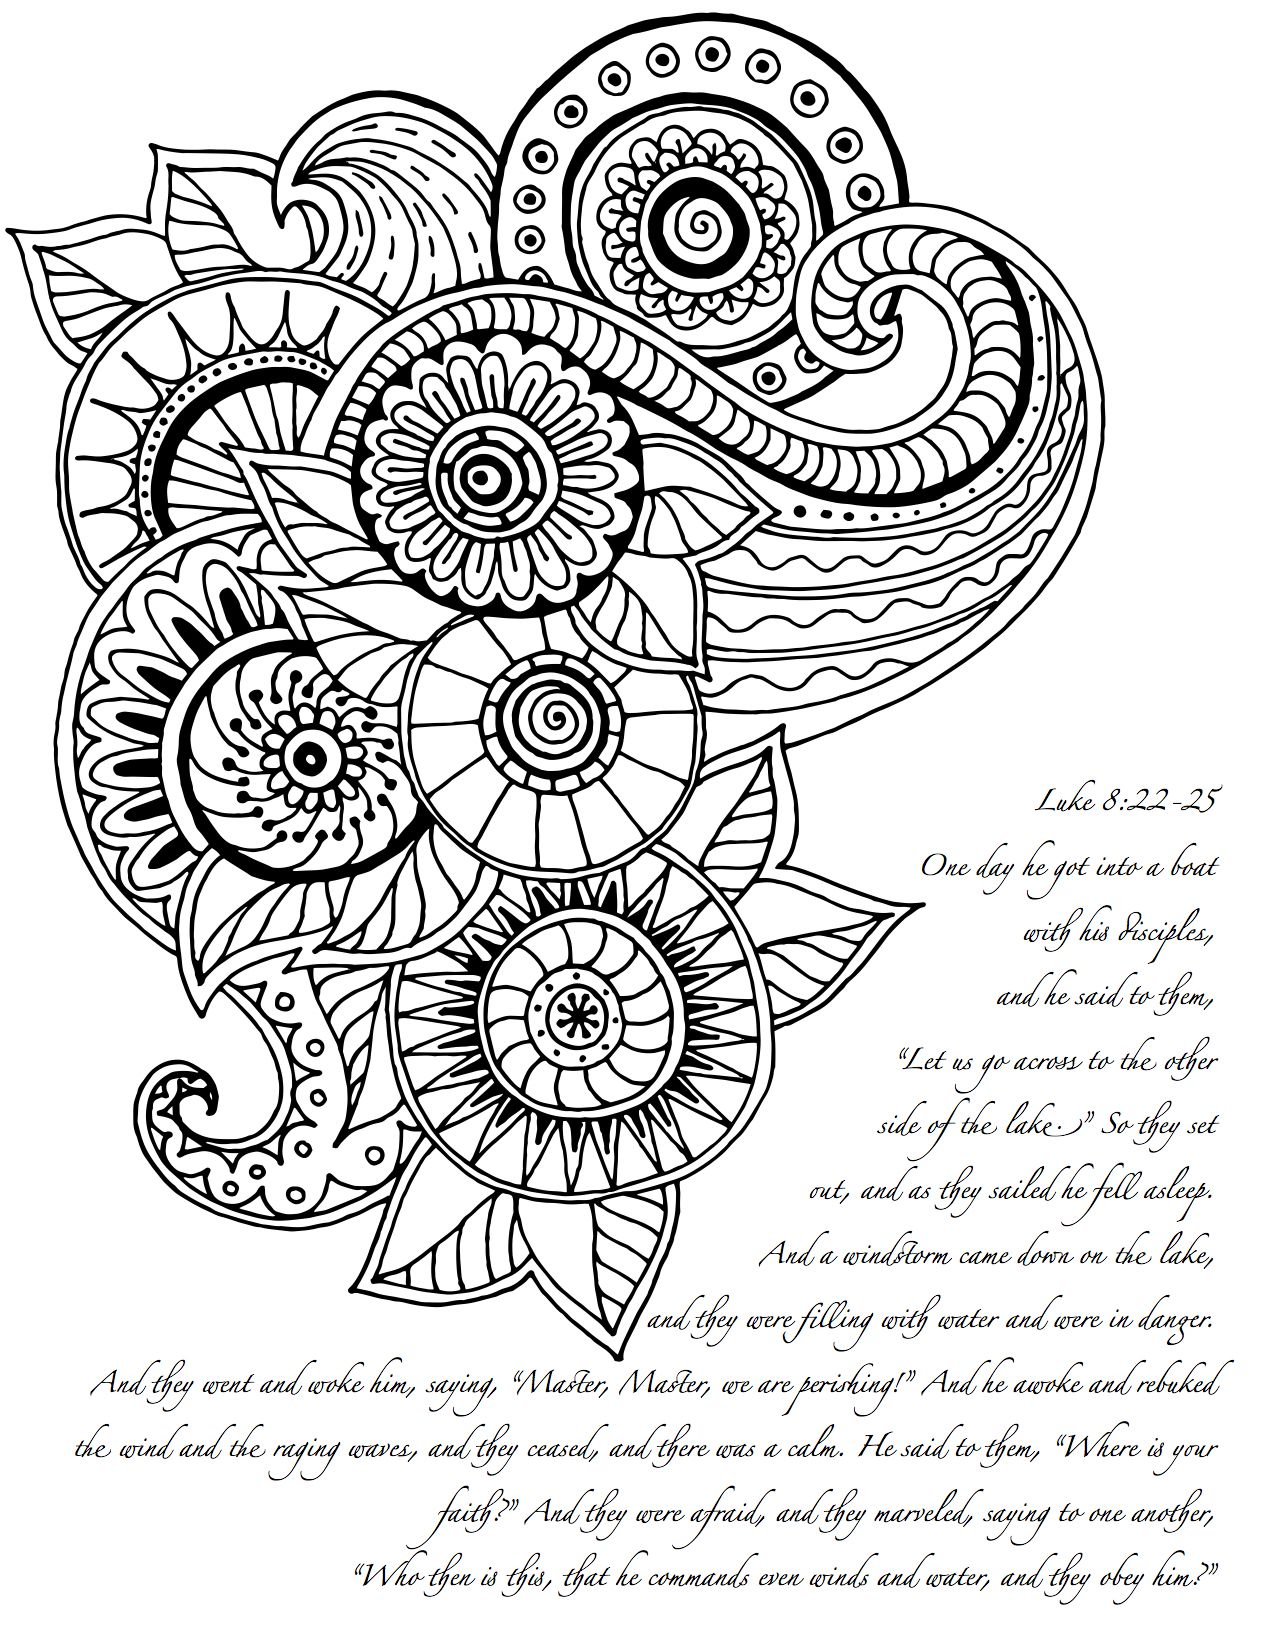 Daily Coloring Pages  to Print 9s - Free Download